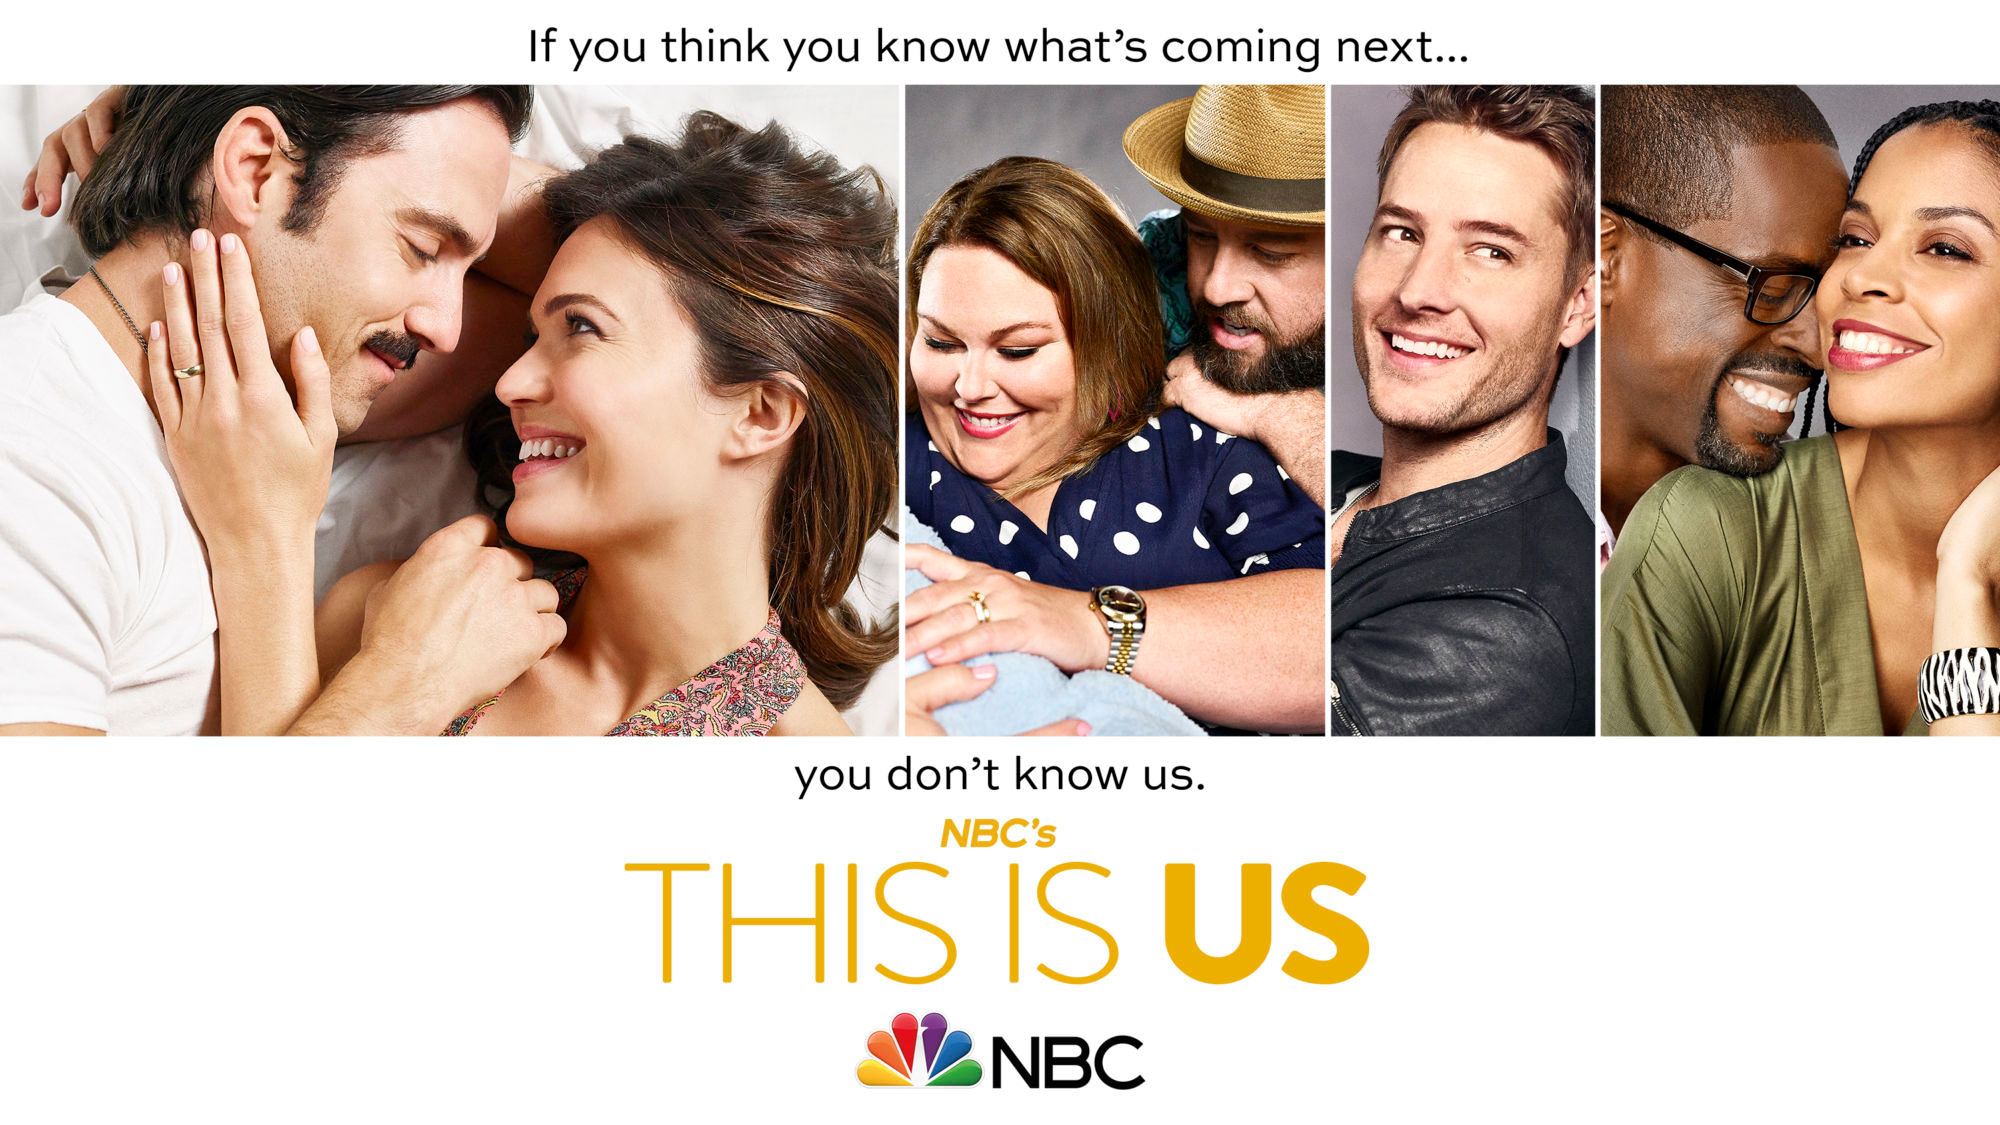 'This Is Us' Has A Big Three Birthday Gift For Fans